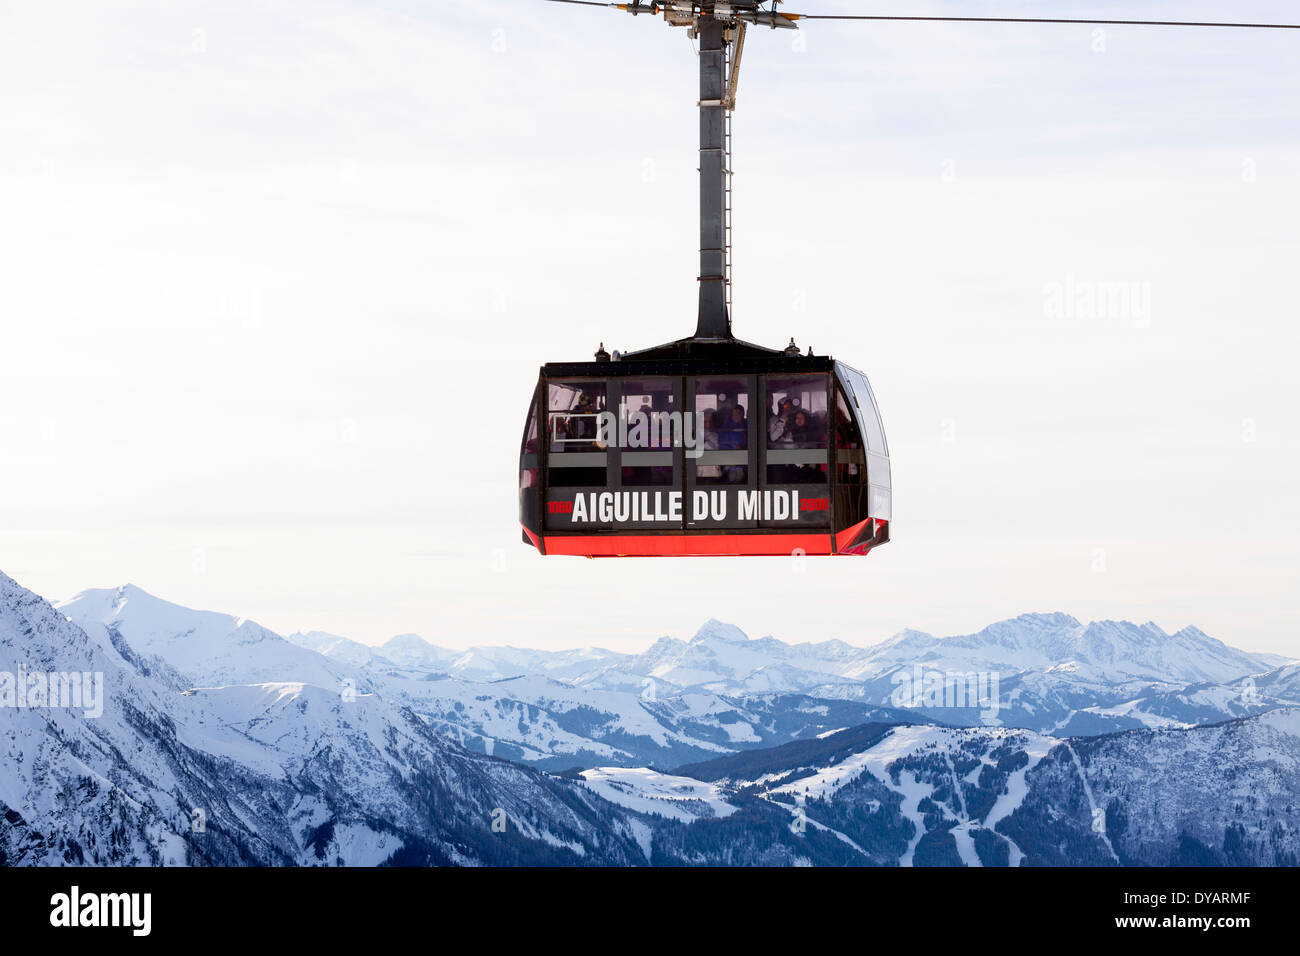 The Aiguille Du Midi gondola, carries passengers to the top of Aiguille Du Midi mountain above Chamonix Mont-Blanc, Stock Photo